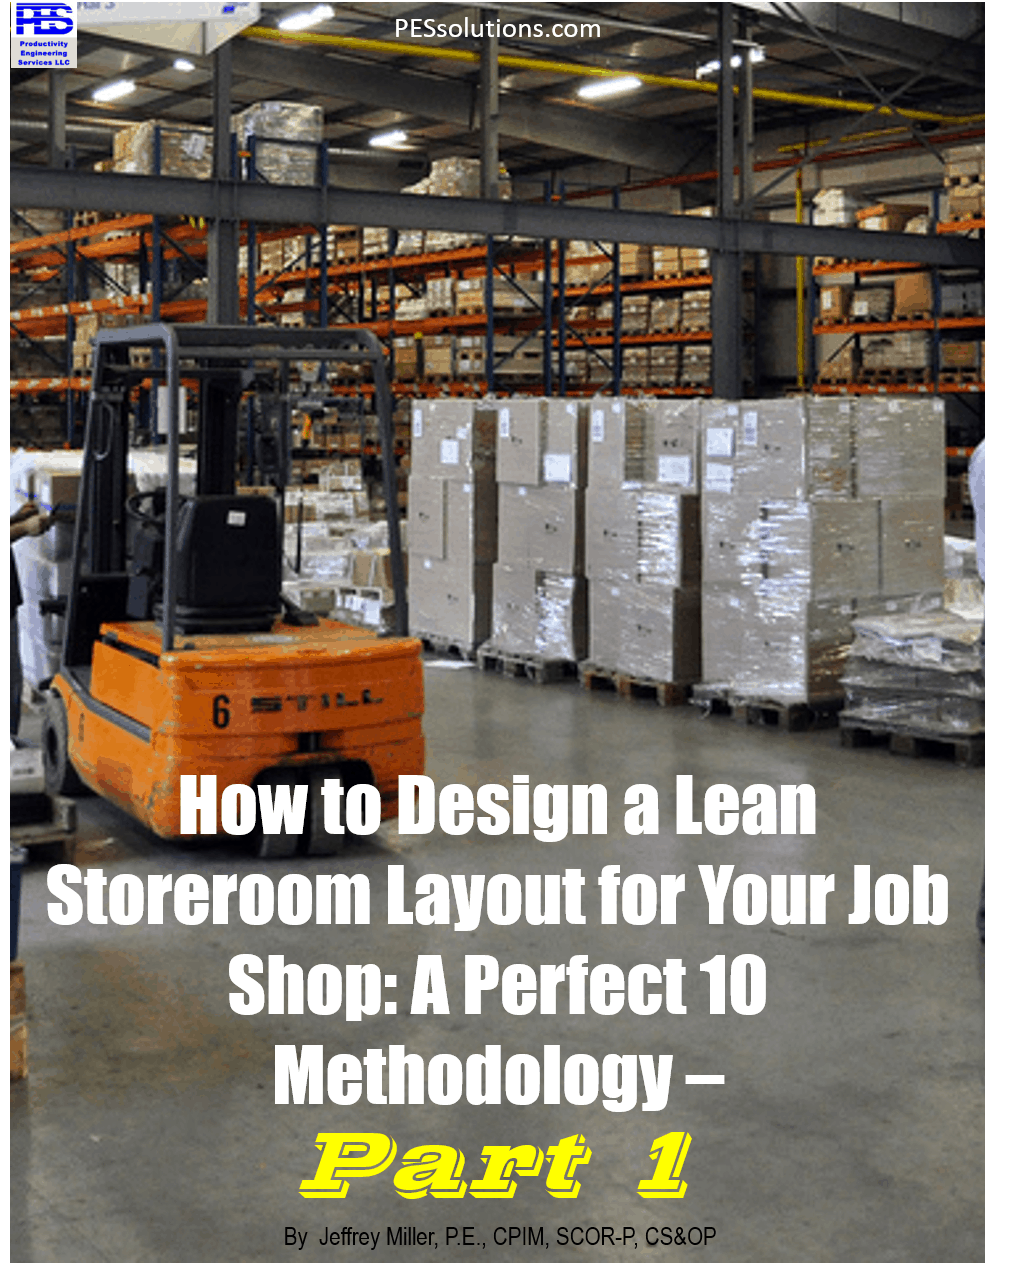 Job Shop Storeroom Image